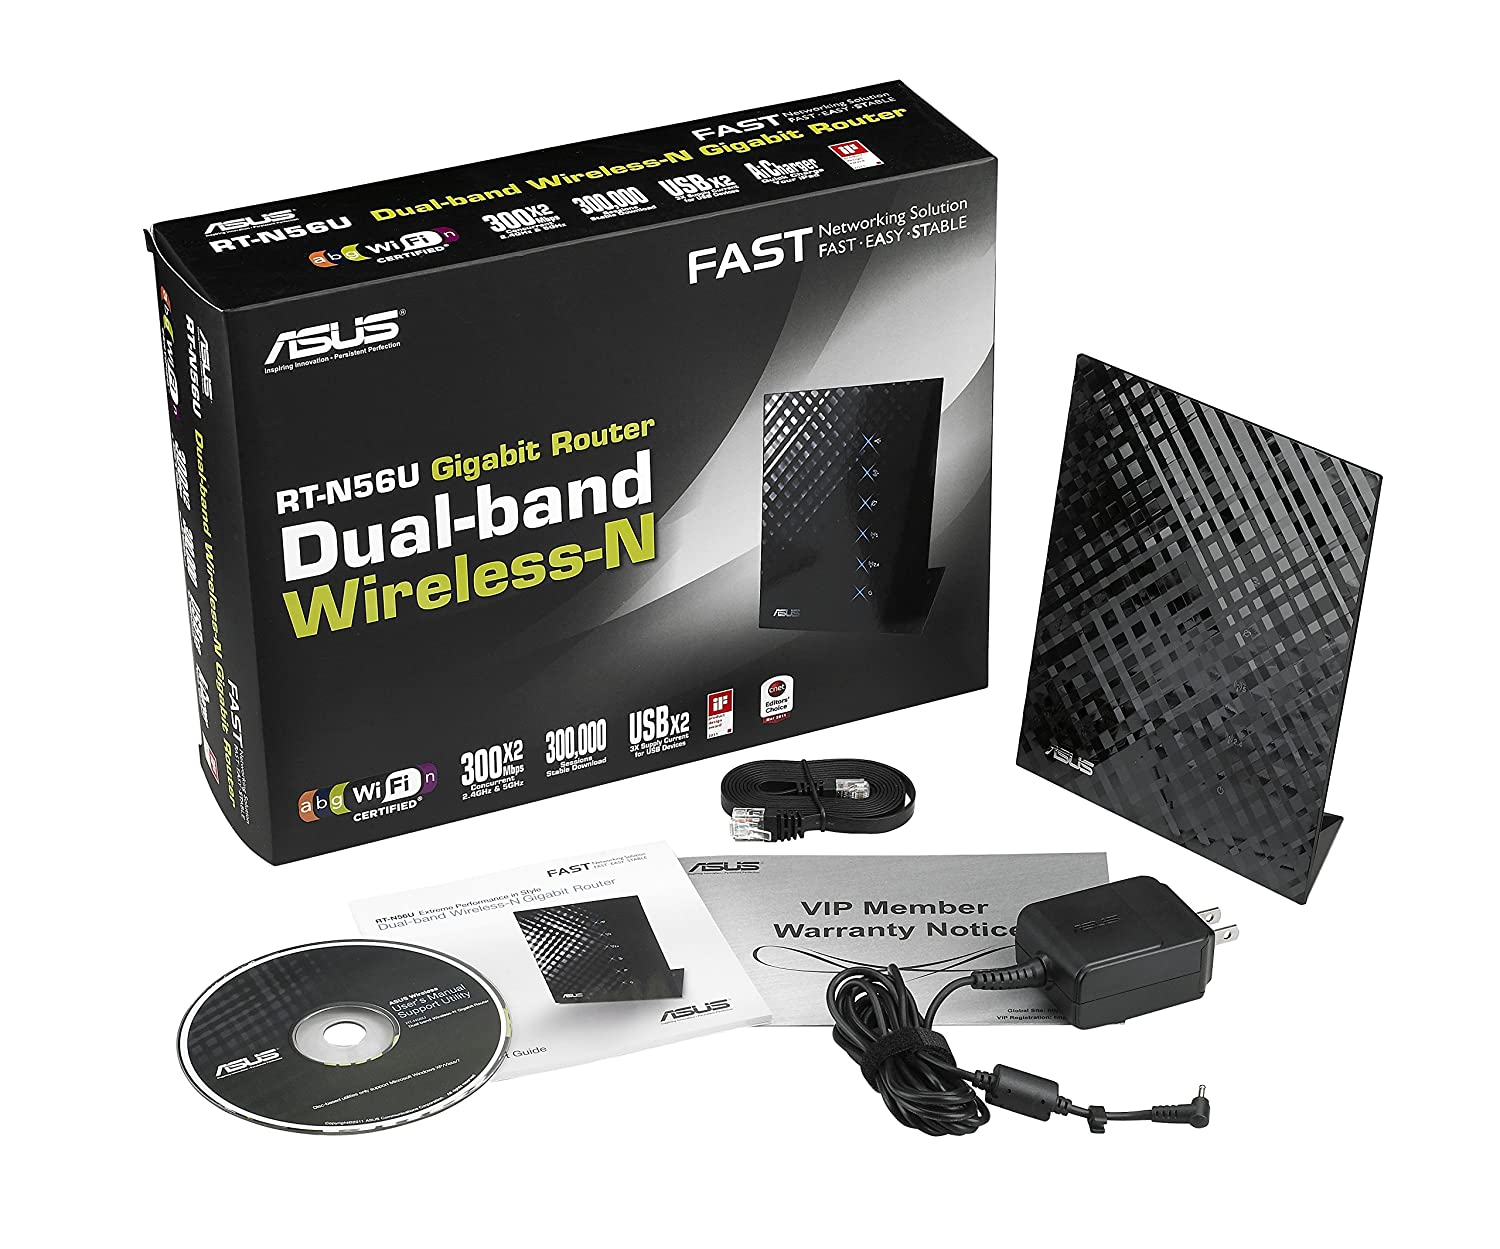 Download Drivers: Asus RT-N56U Wireless Router